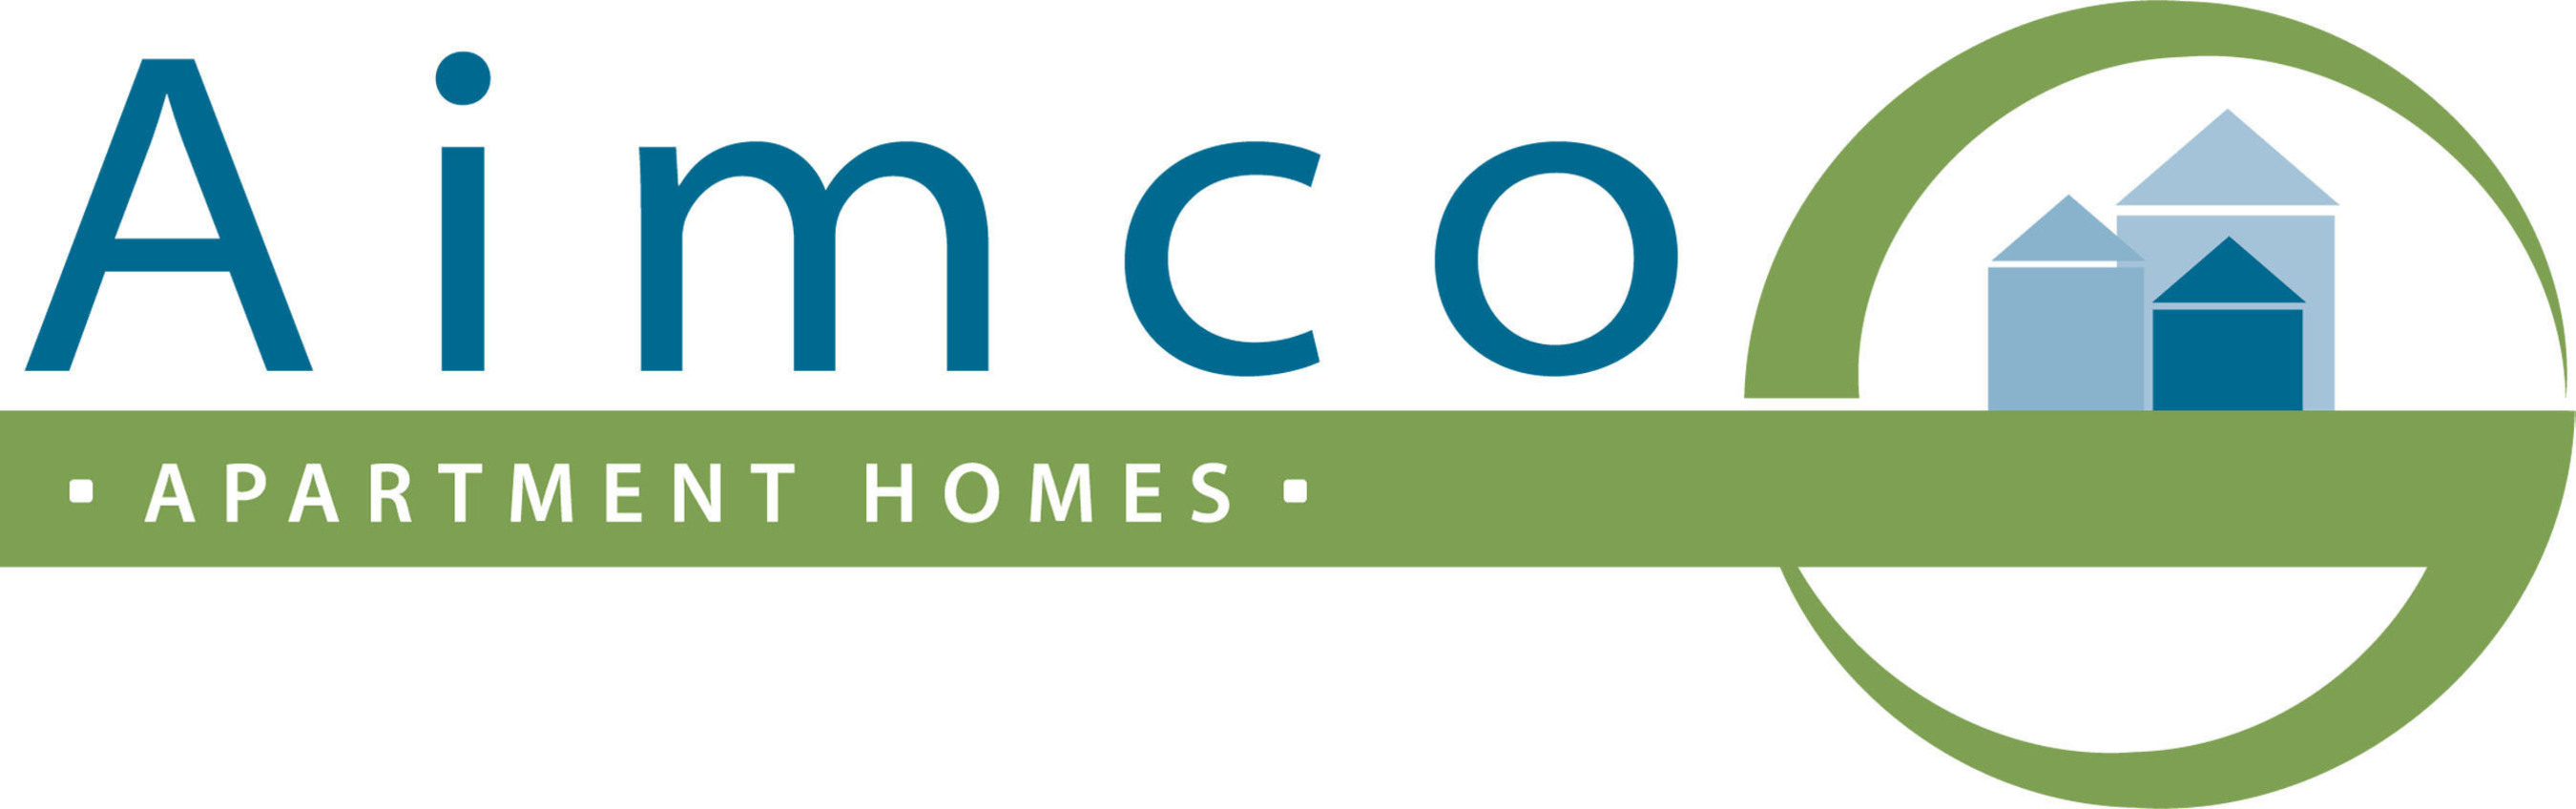 Apartment Investment & Management Co. (Aimco) Company Logo